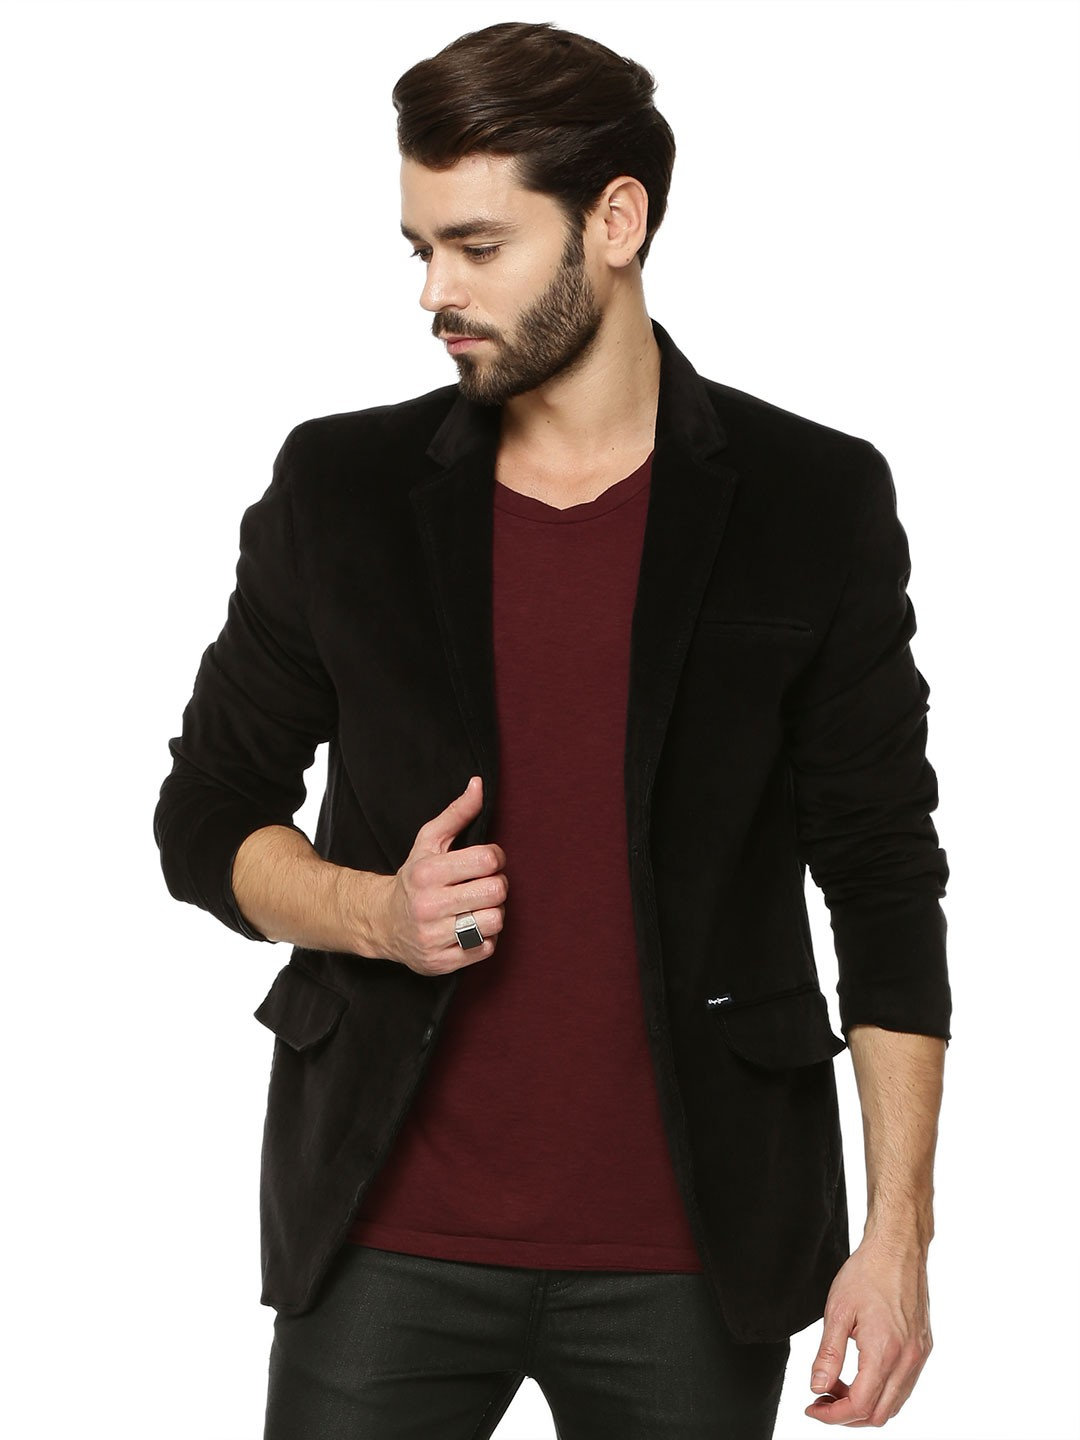 Coats & Blazers for Men: Exclusive Online Range from India Sharpen your traditional style with our ultra-sophisticated and bespoke coat and blazer collection.